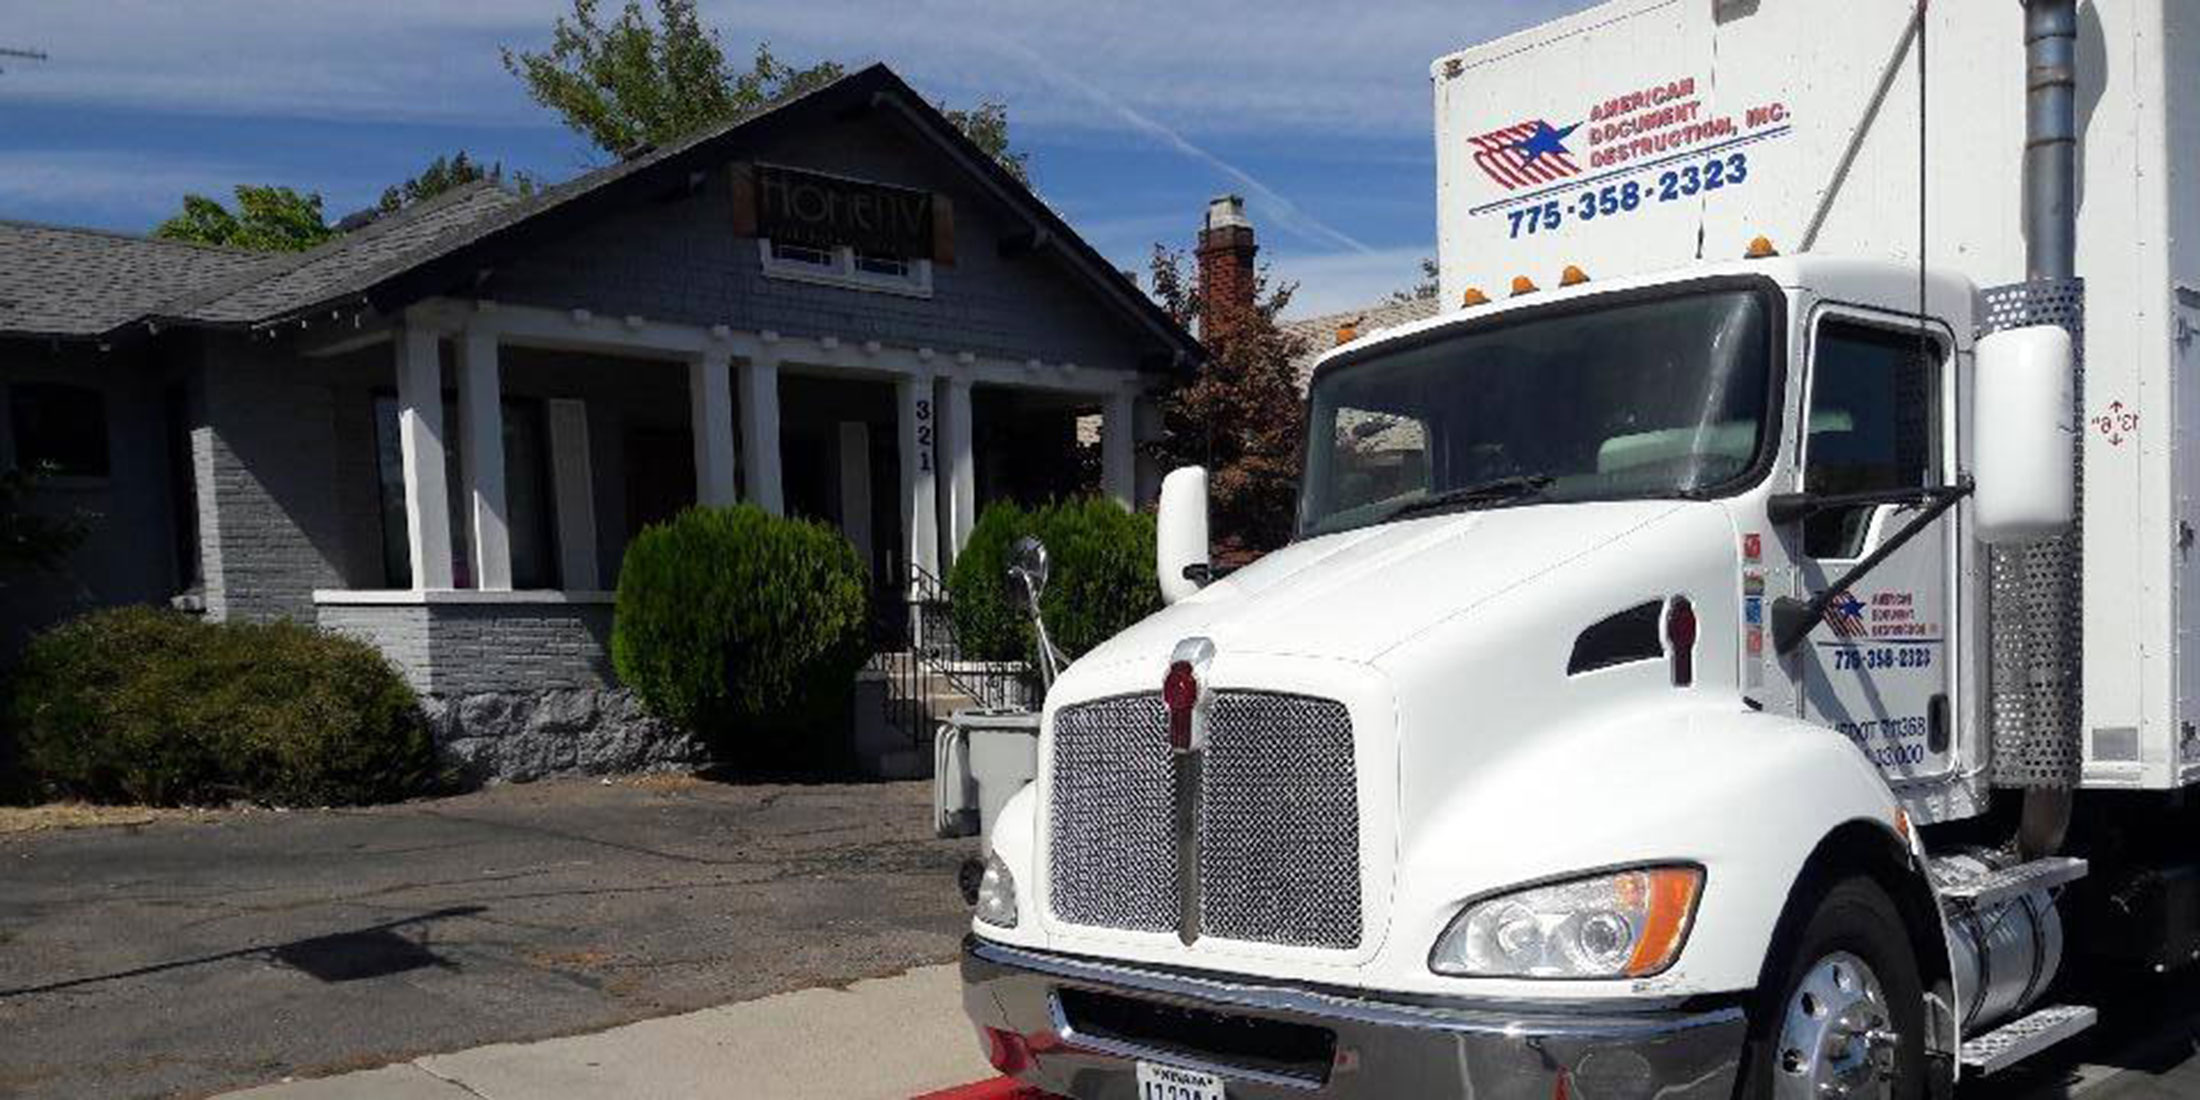 American Document Destruction truck in front of residential home